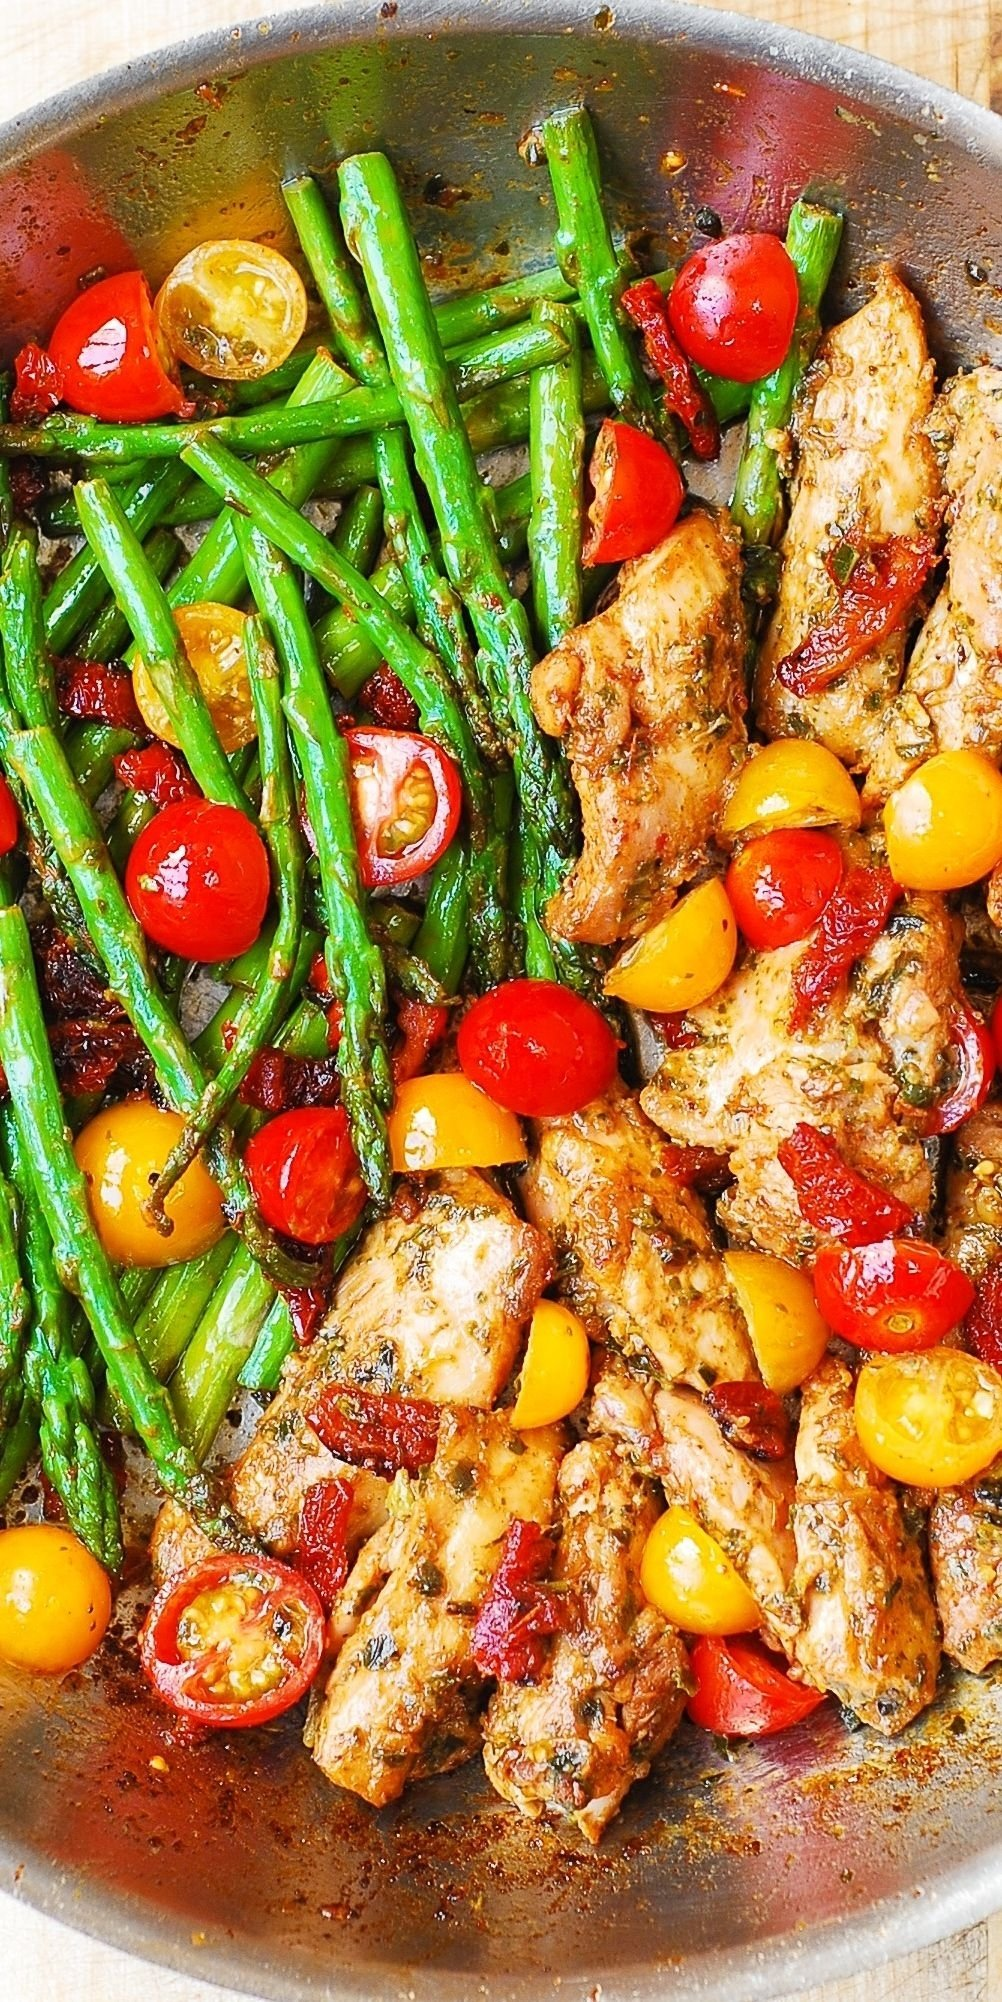 10 Perfect Fast And Healthy Dinner Ideas quick and simple healthy dinner for any day healthy foods 1 2020